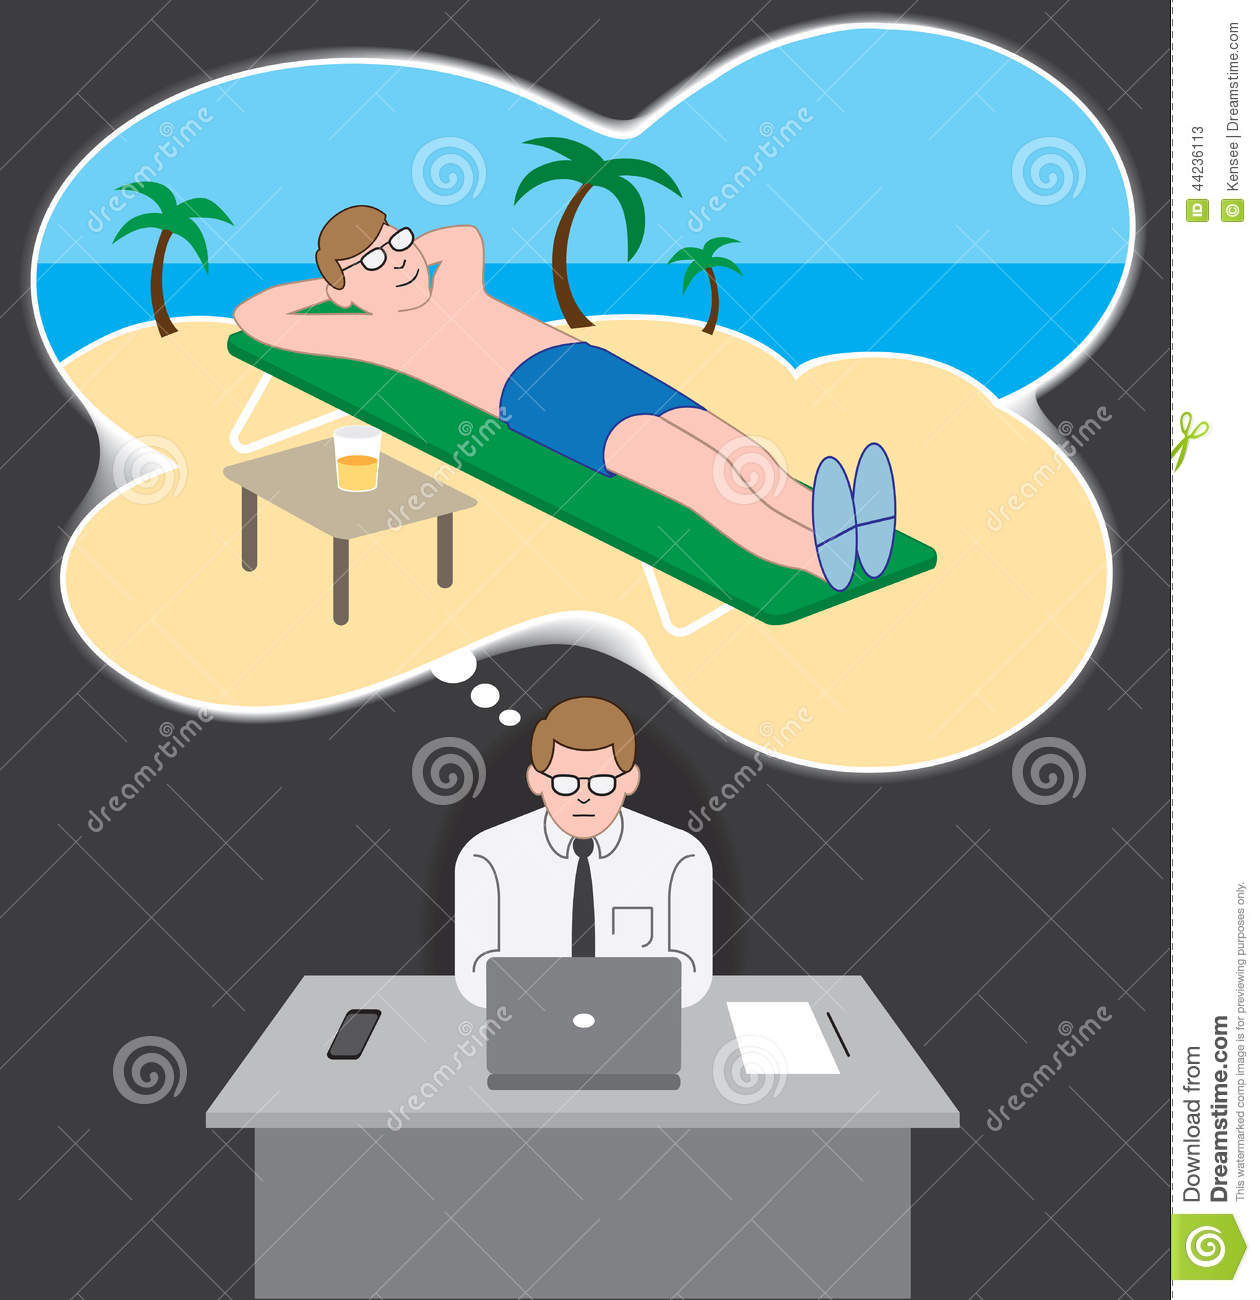 Vacation from work clipart download Vacation from work clipart - ClipartFest download